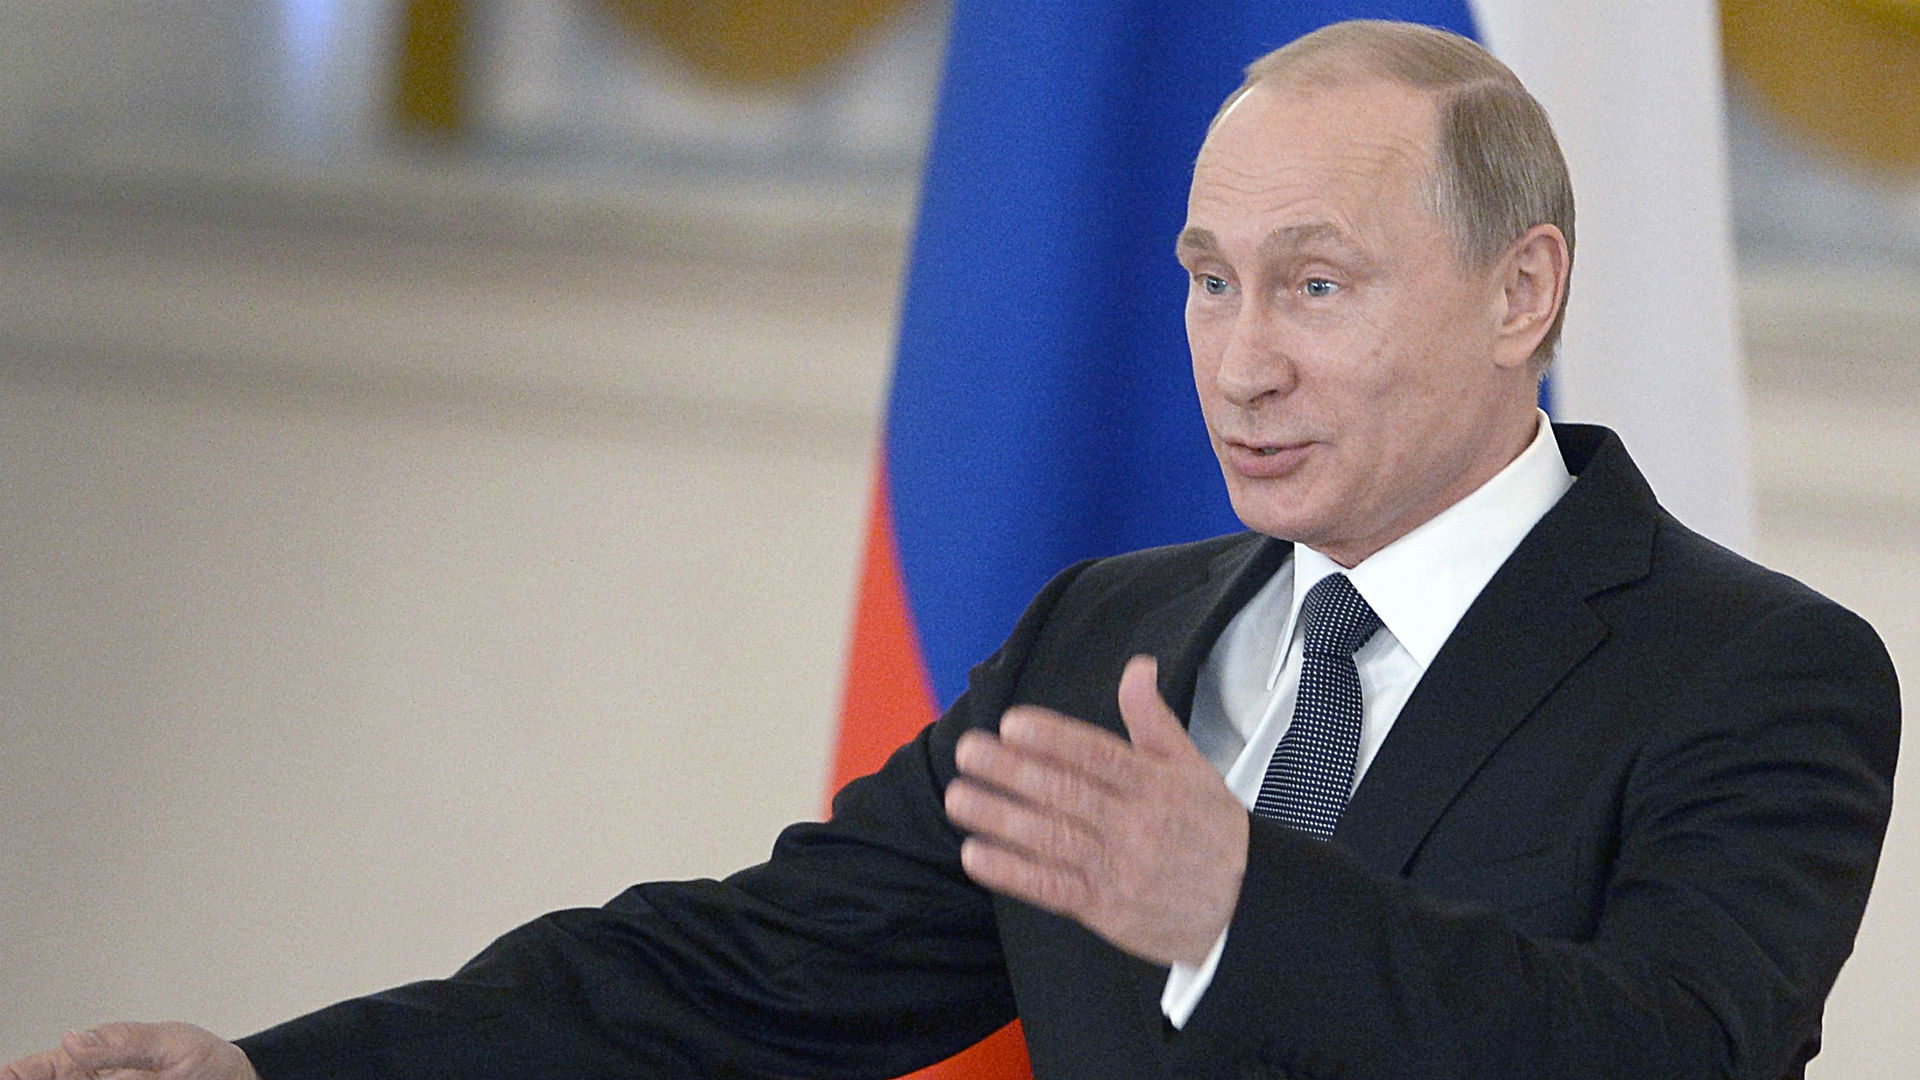 Vladimir Putin says U.S. is meddling in FIFA affairs